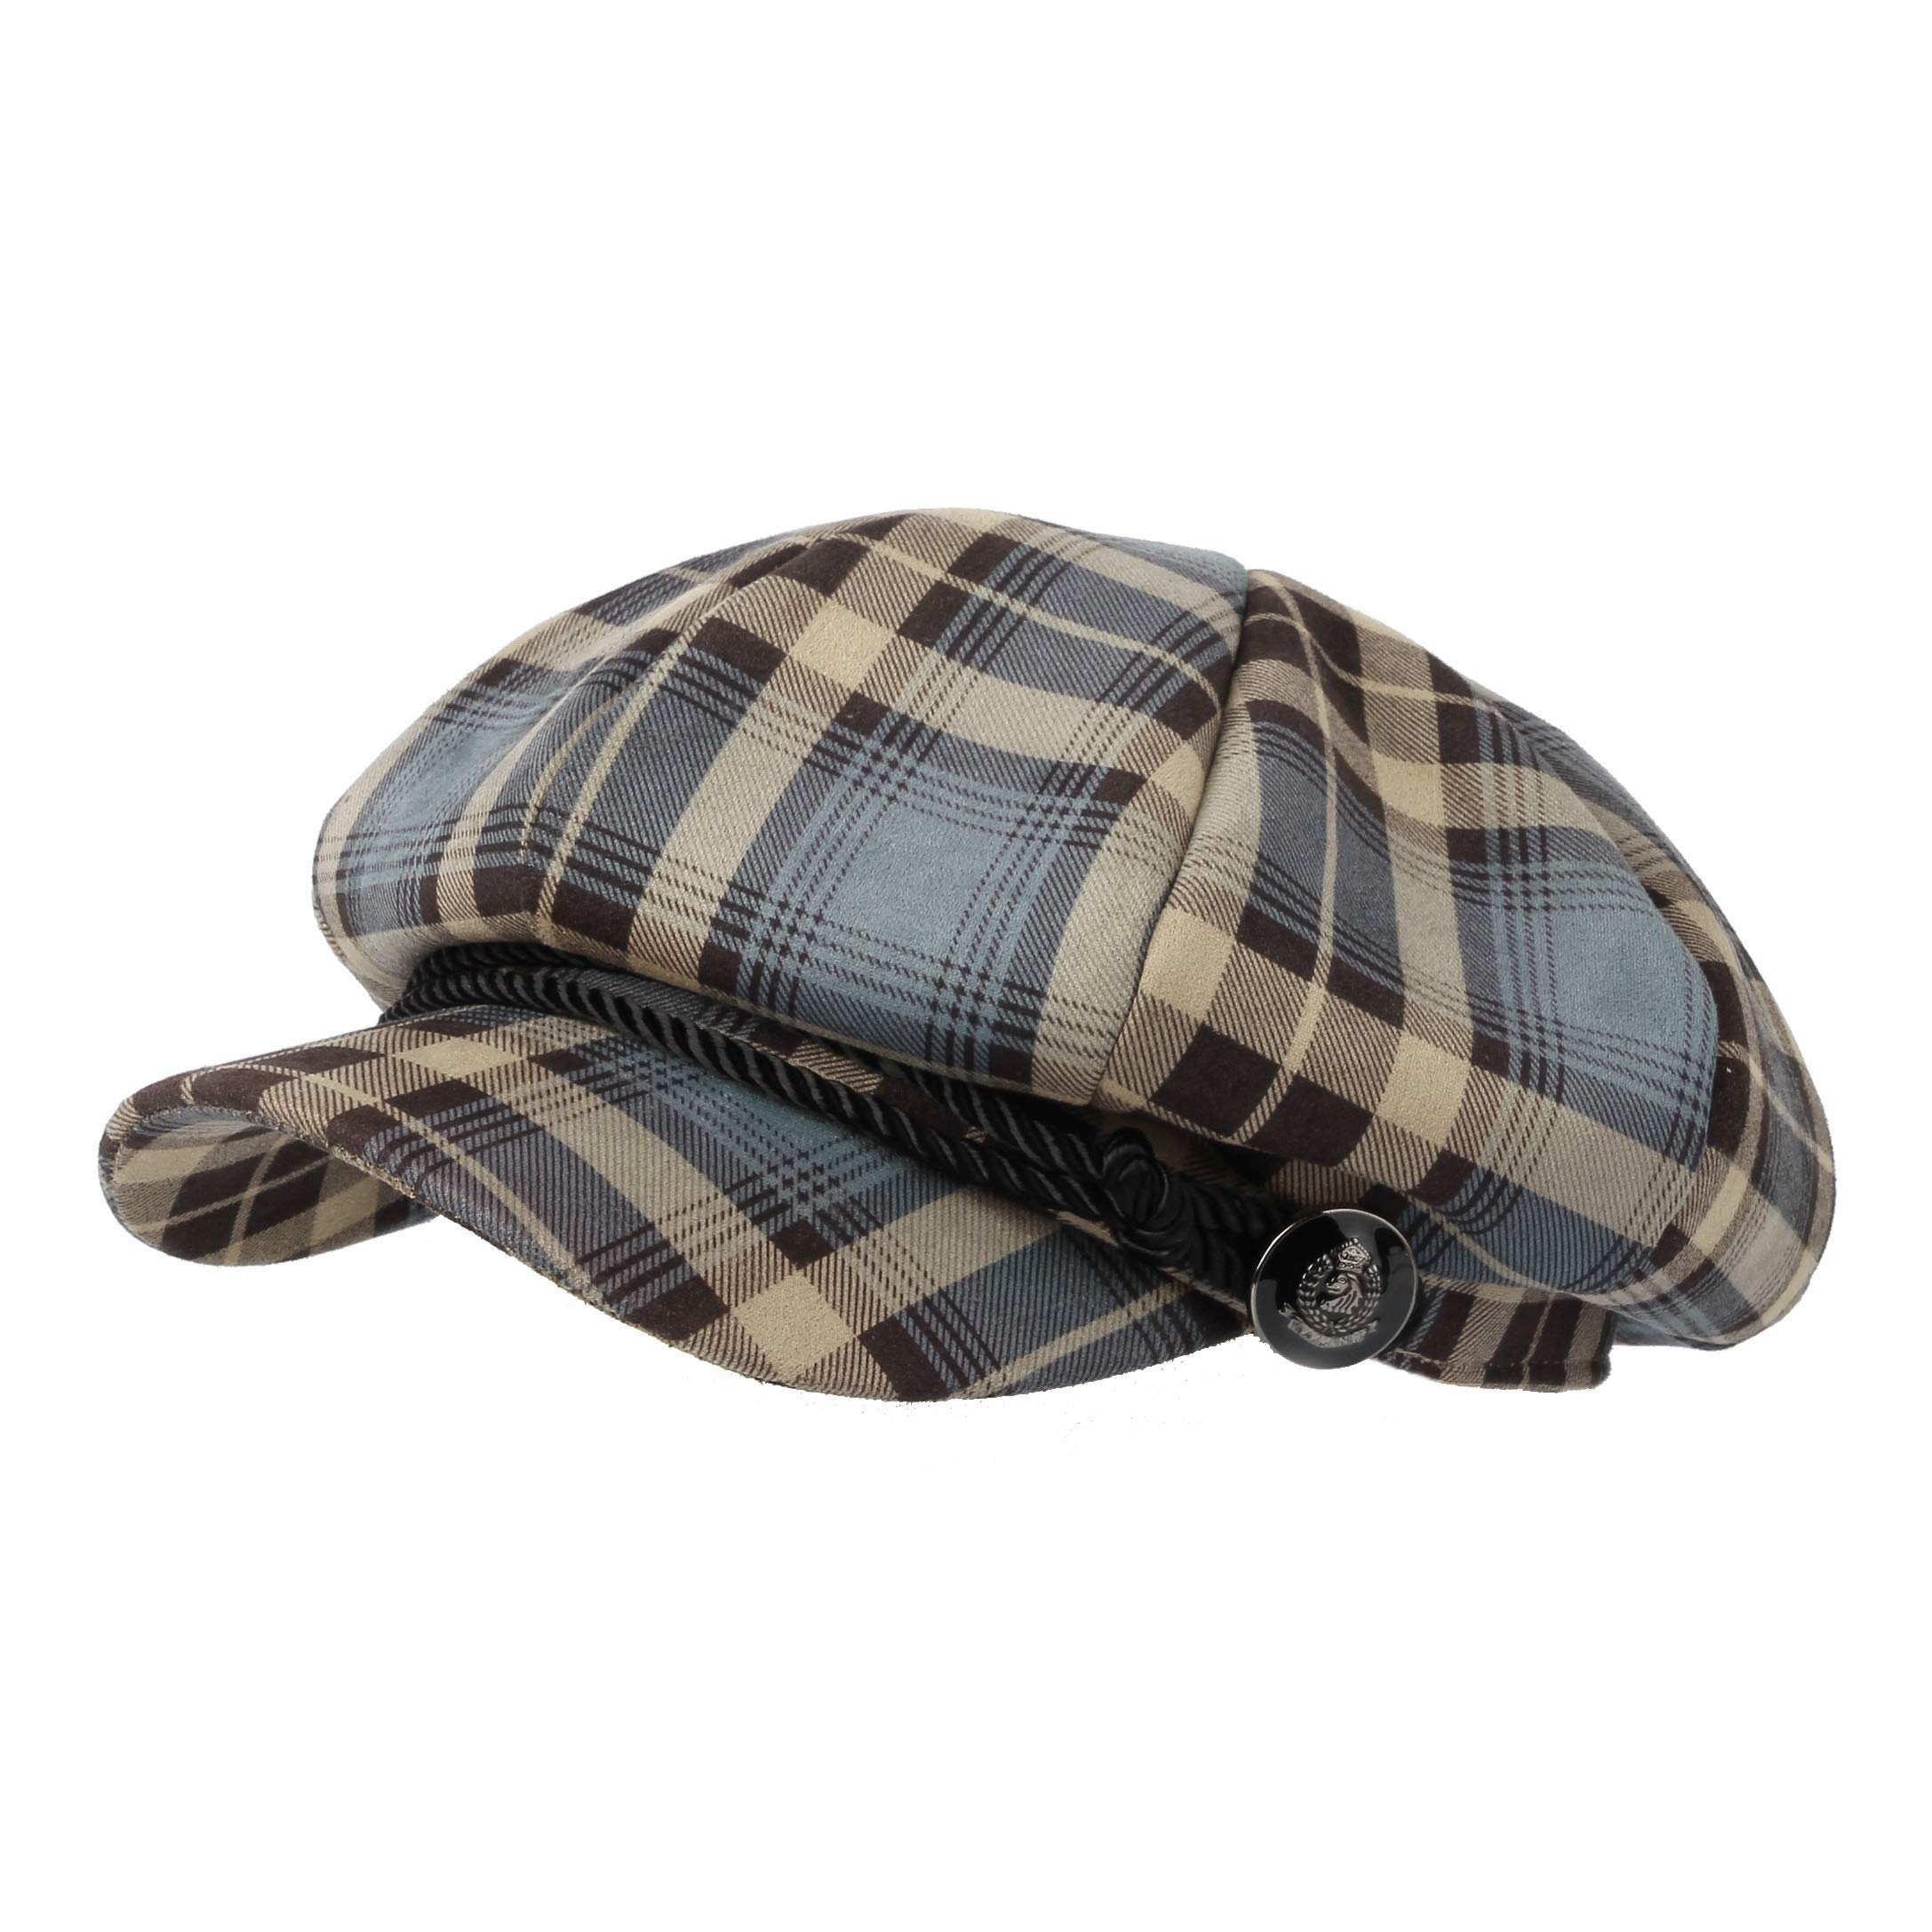 WITHMOONS Tartan Plaid Check Beret Newsboy Hat Soft Fabric SLG1122 (Blue) by WITHMOONS